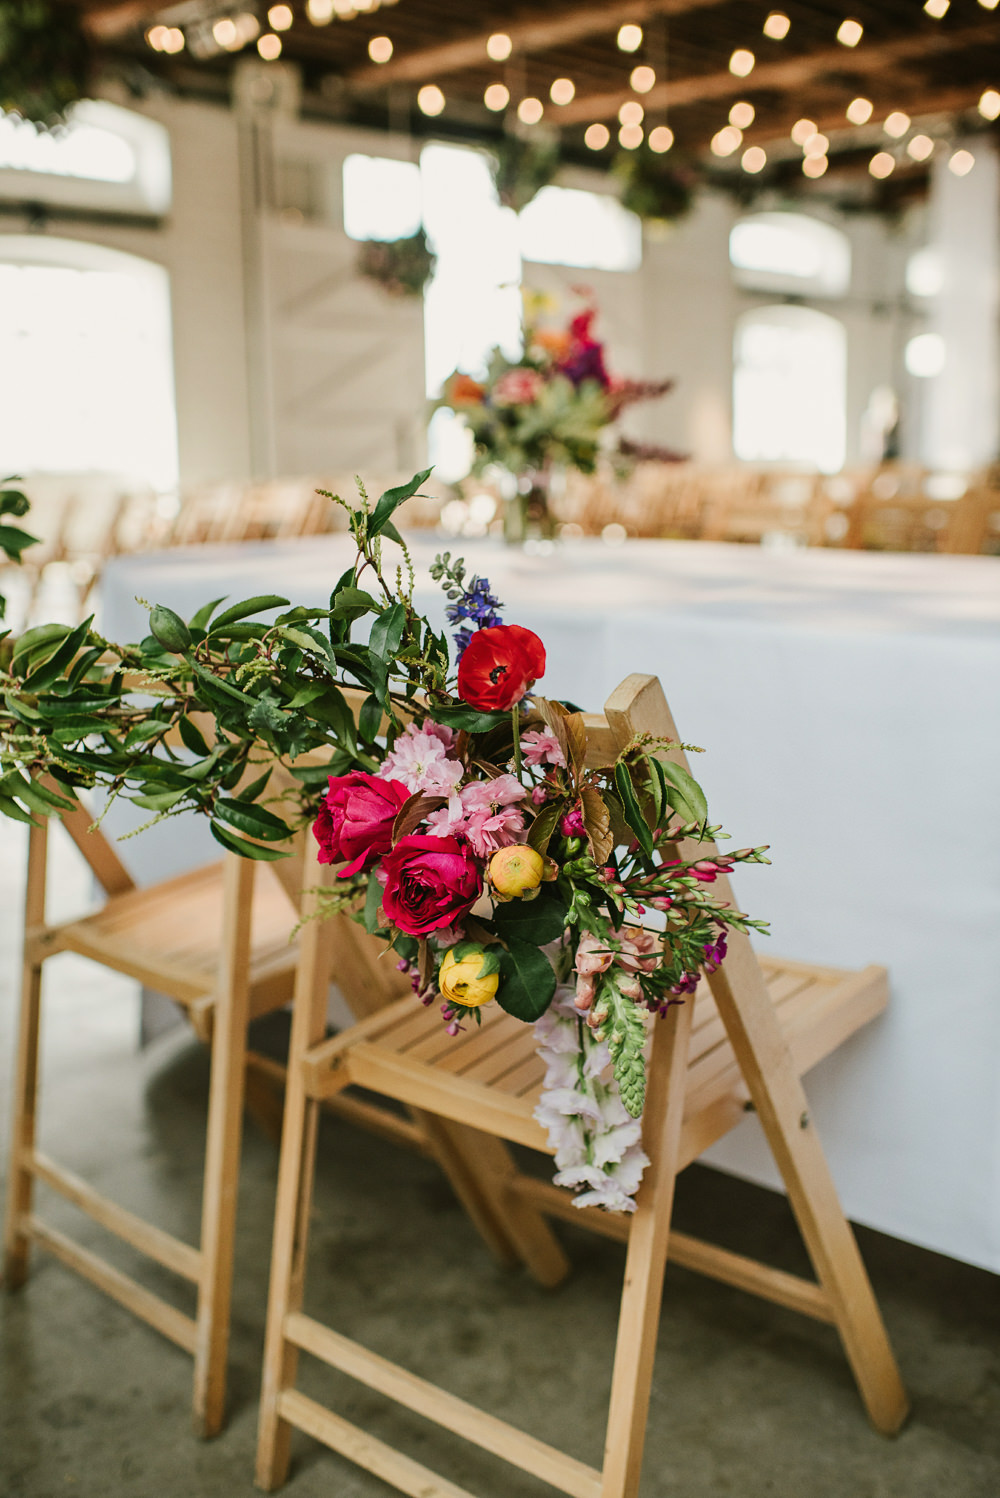 Chair Flowers Decor Spring Coral Peony Natural Wild Colourful Riverside London Wedding Ellie Gillard Photography